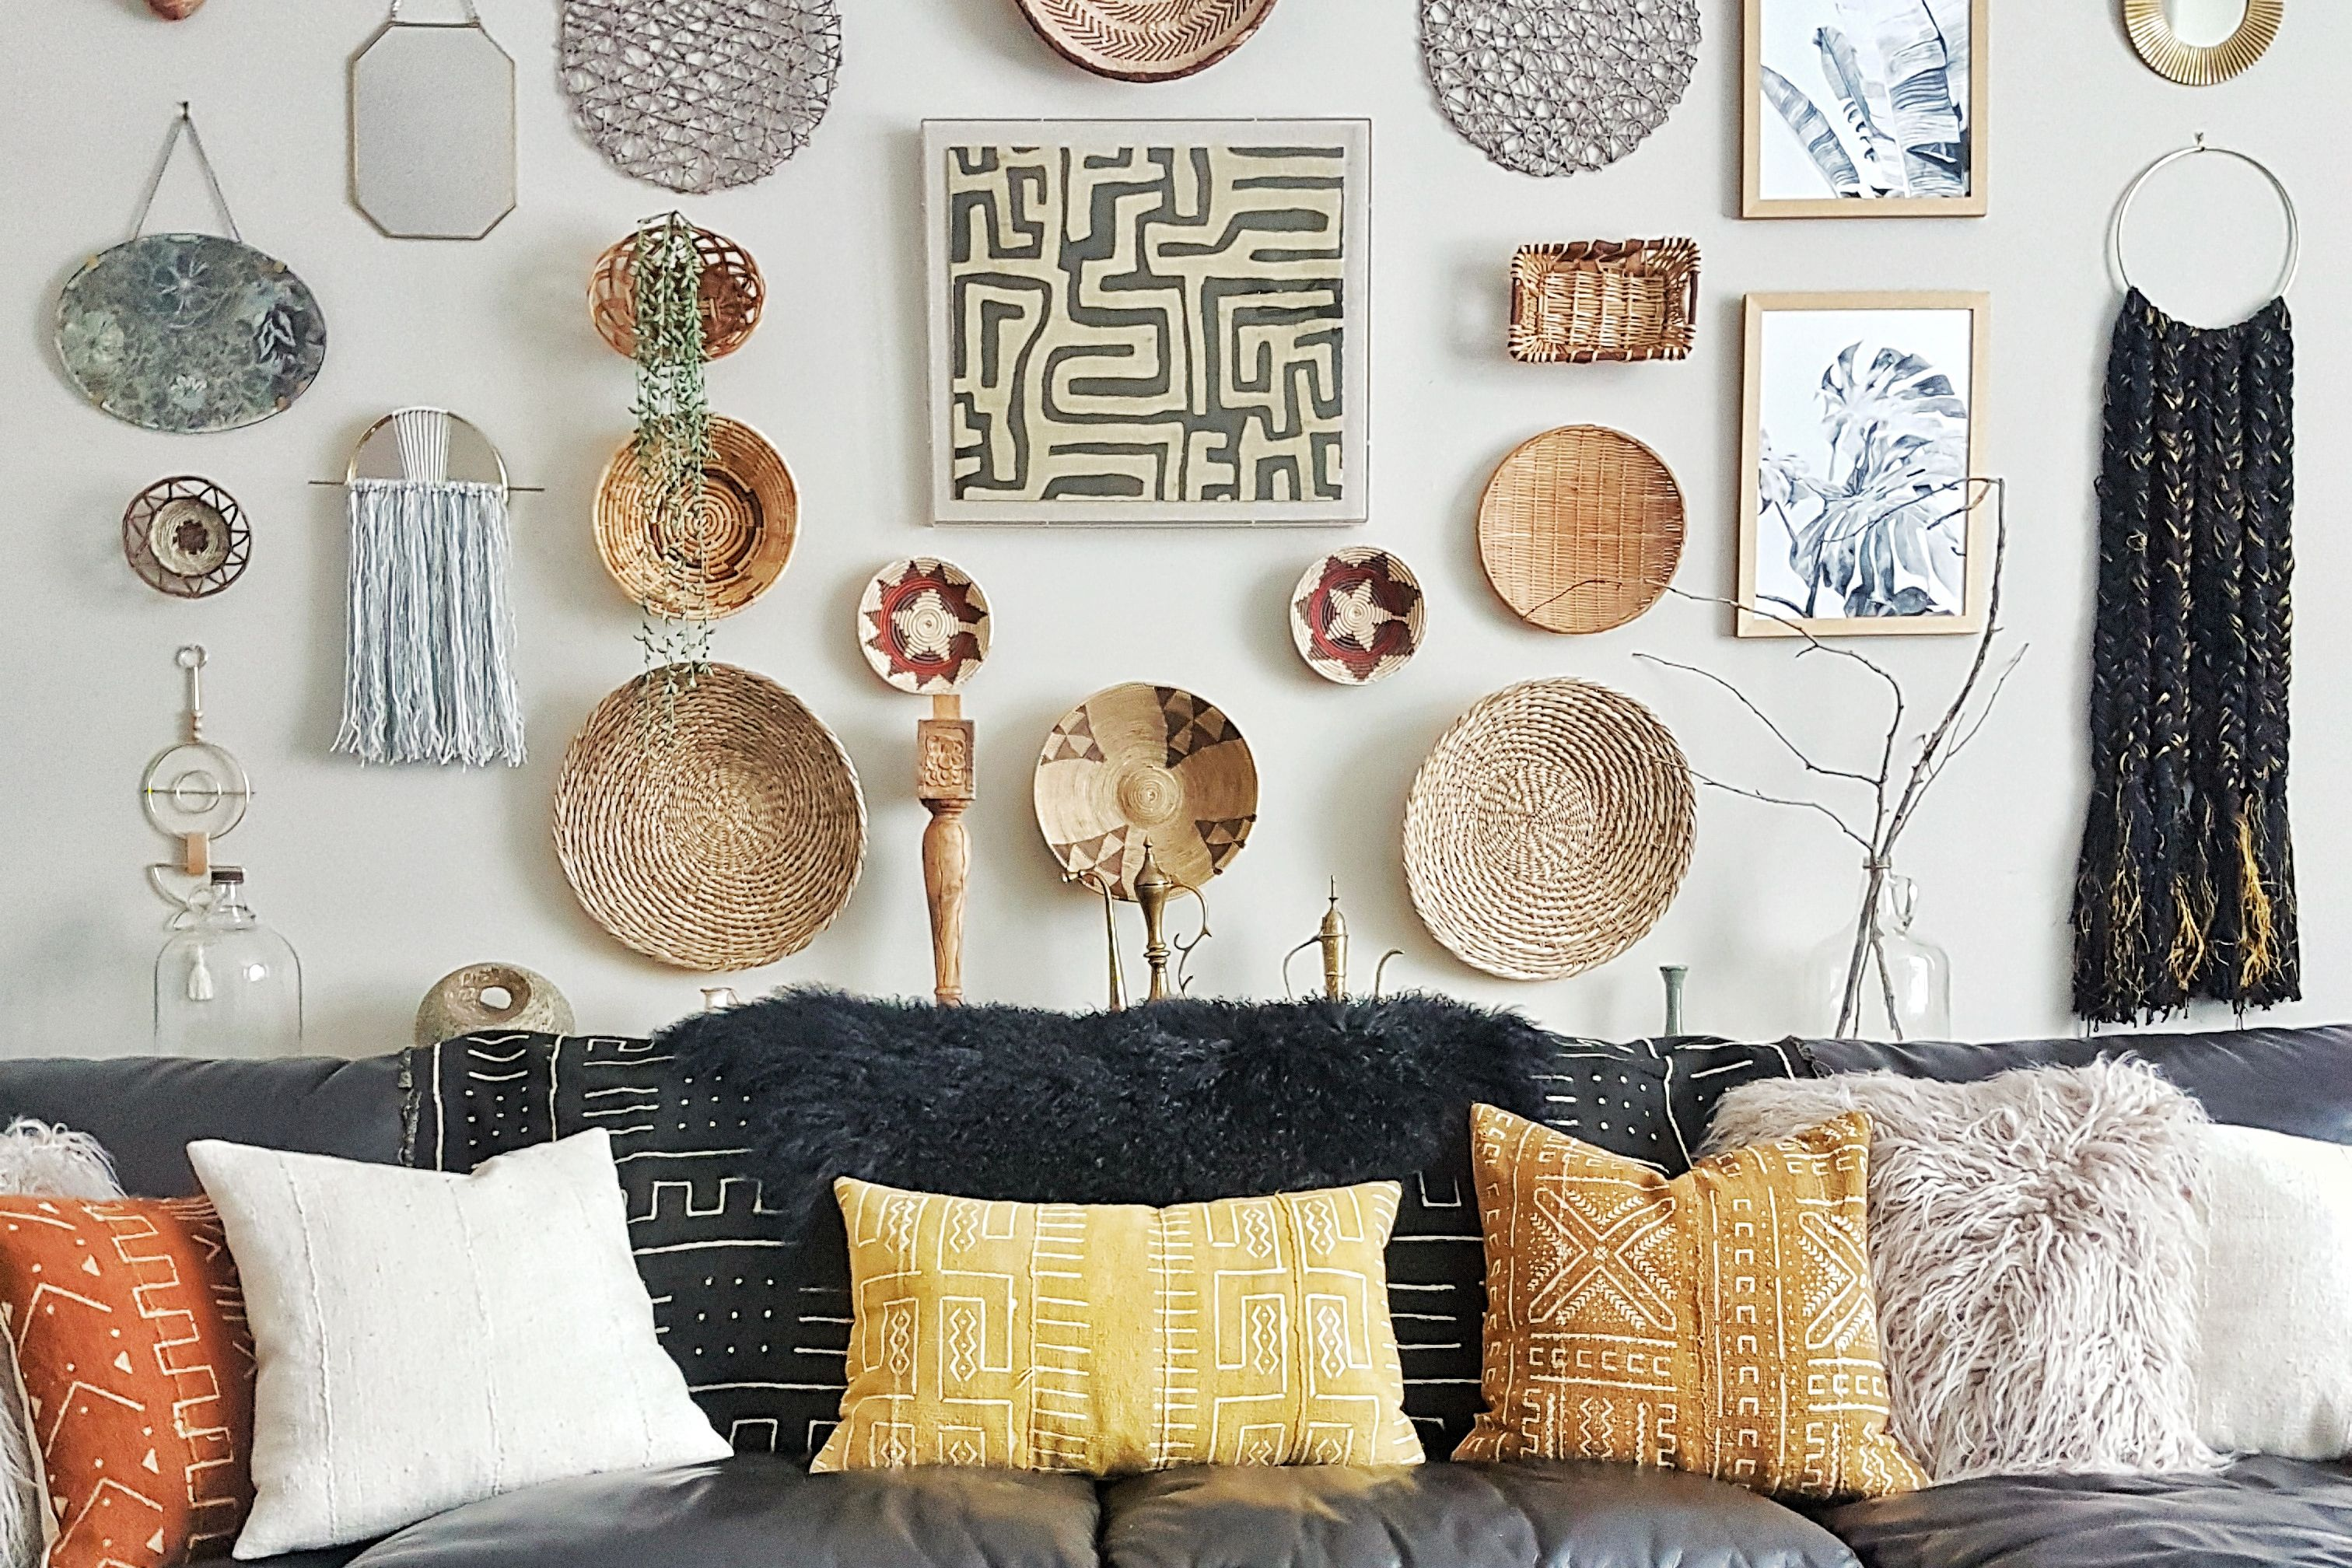 awesome wall decor ideas for tiny spaces gaucin pinterest